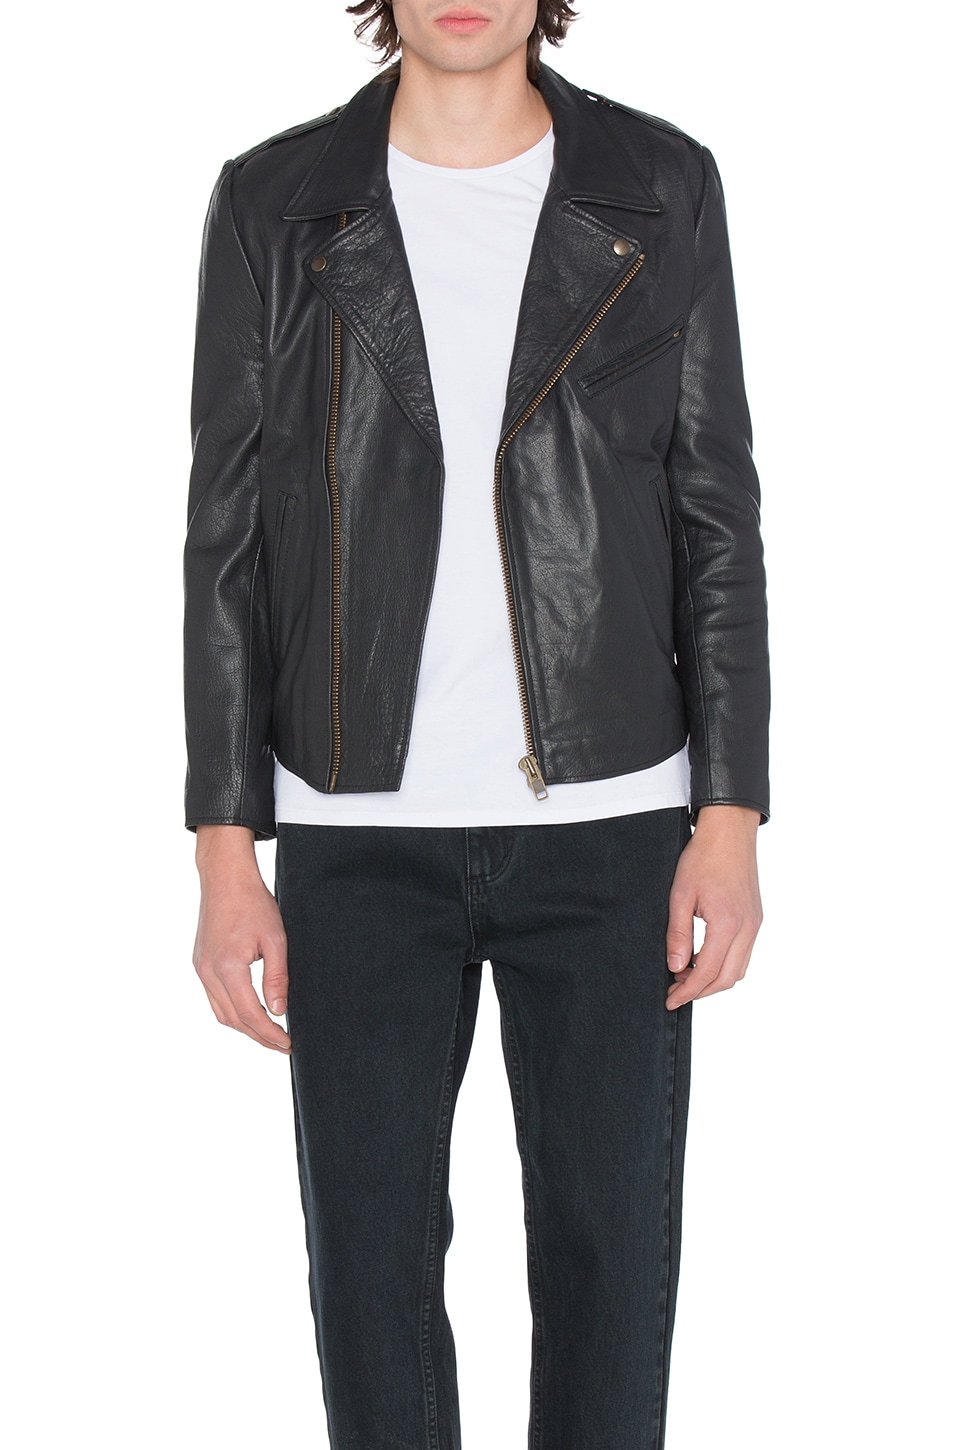 Dagger Leather Jacket by ROLLA'S